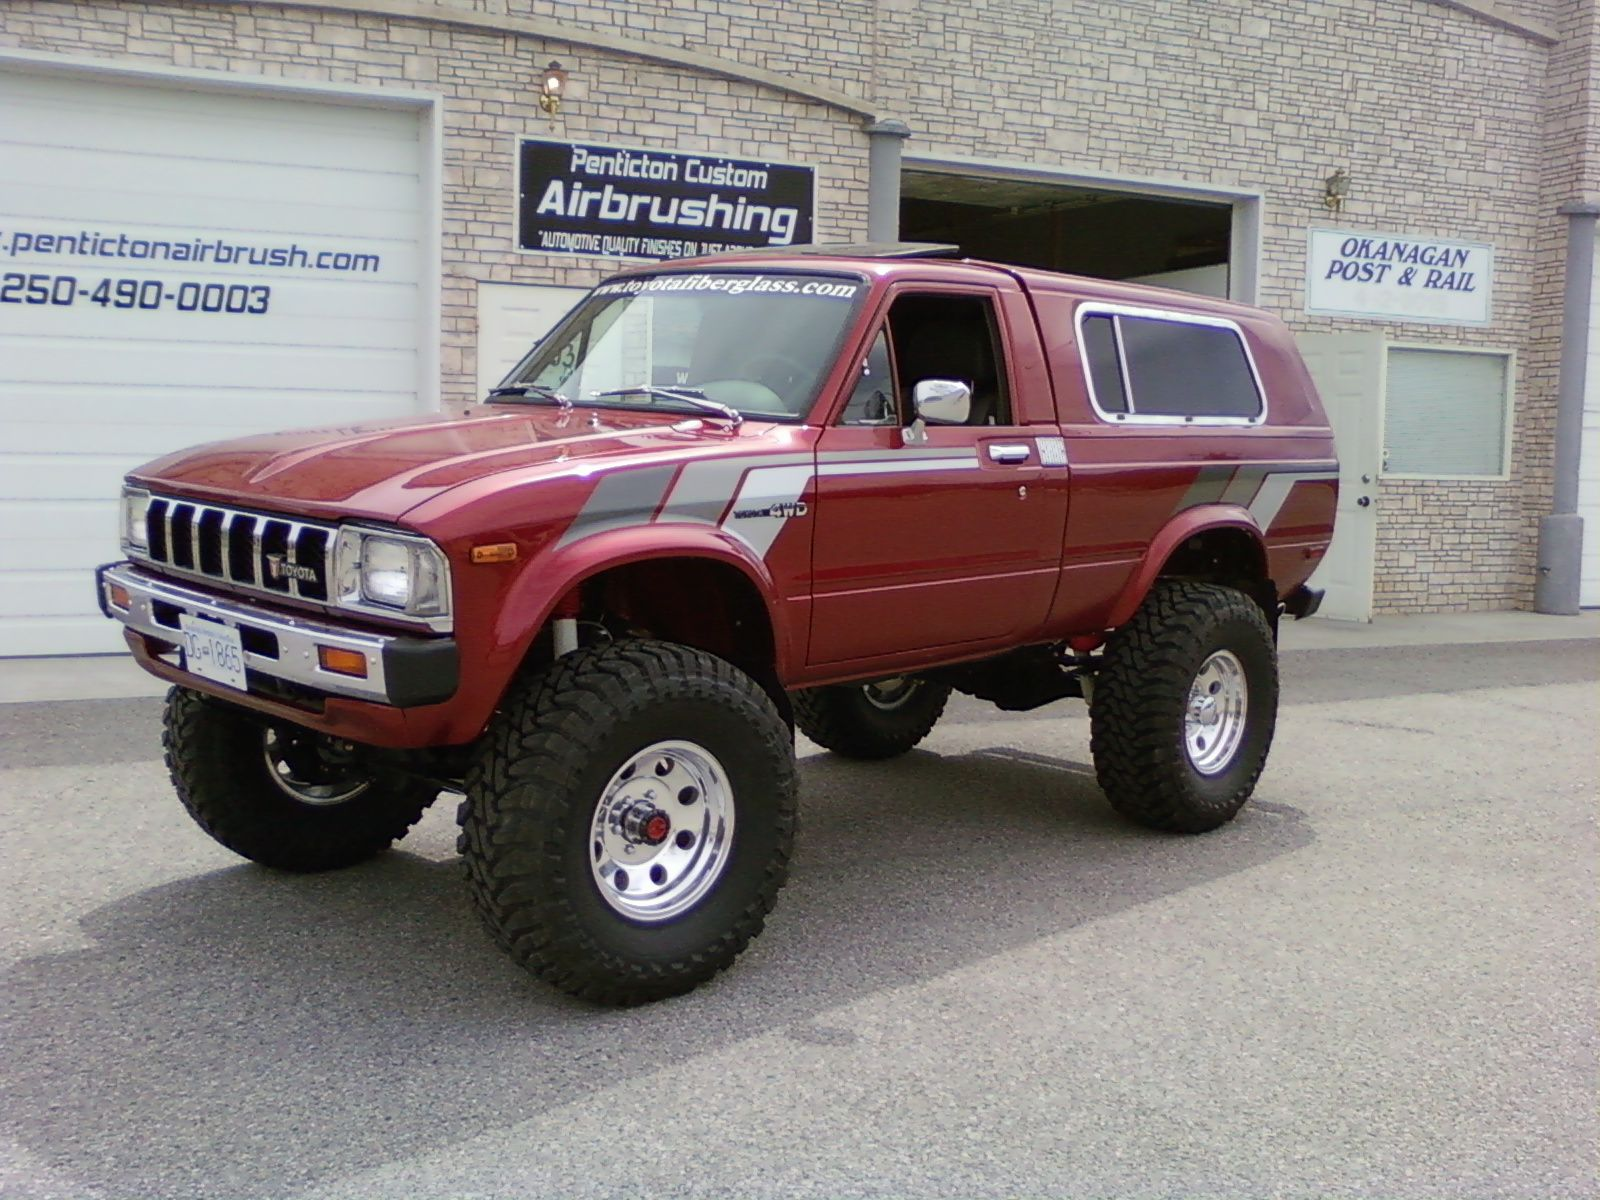 The original 4runner called the Toyota Trekker wish I had one